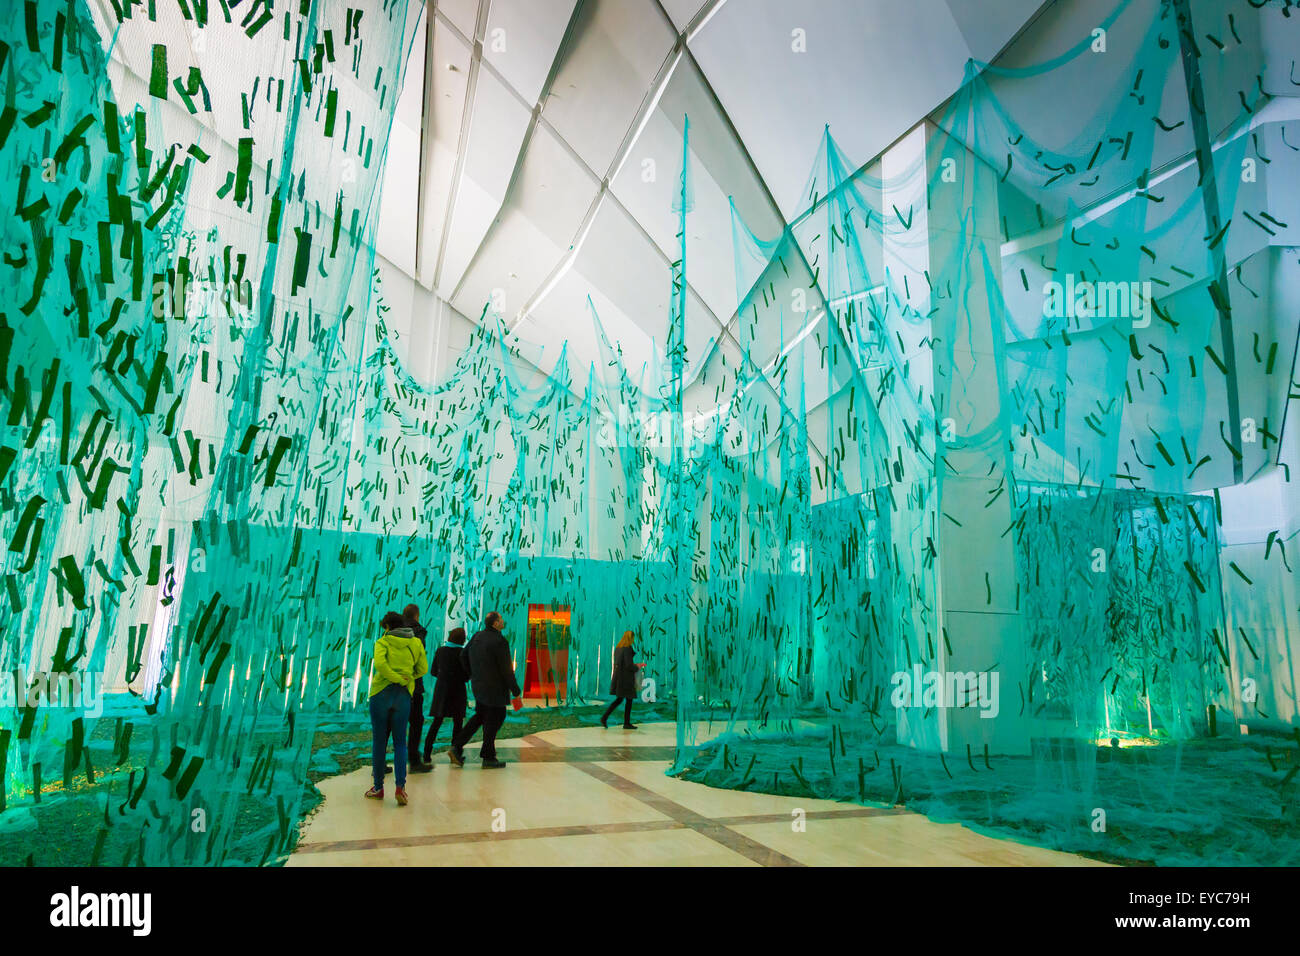 Way of St. James exhibition. City of Culture. - Stock Image